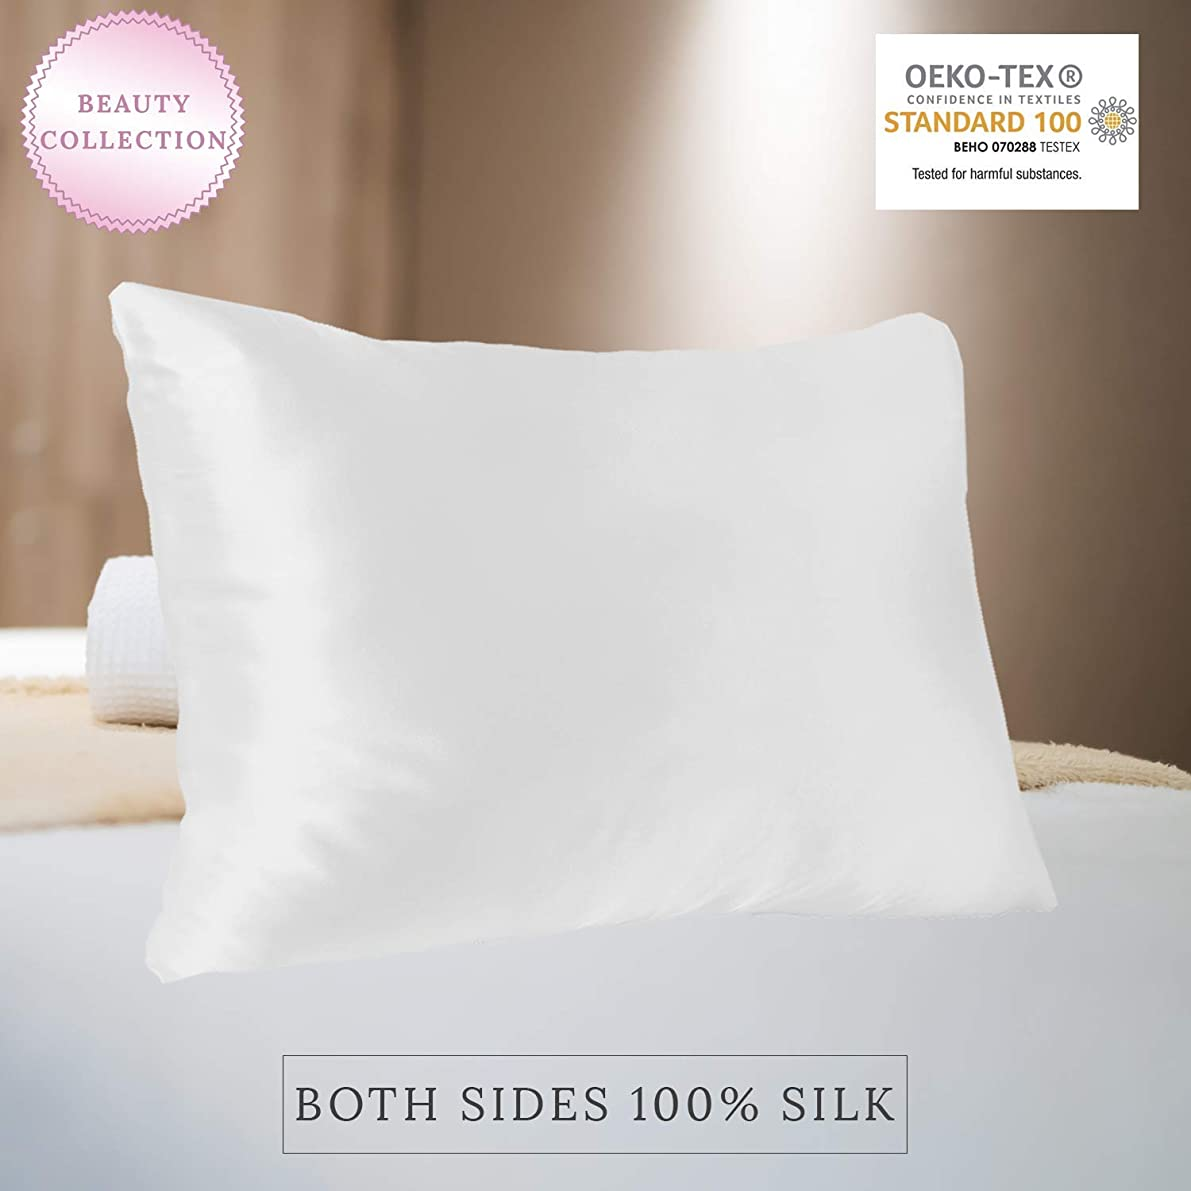 MYK 100% Pure Natural Mulberry Silk Pillowcase, 22 Momme for Hair and Skin Care, OKEO-TEX, Standard Size, Ivory White